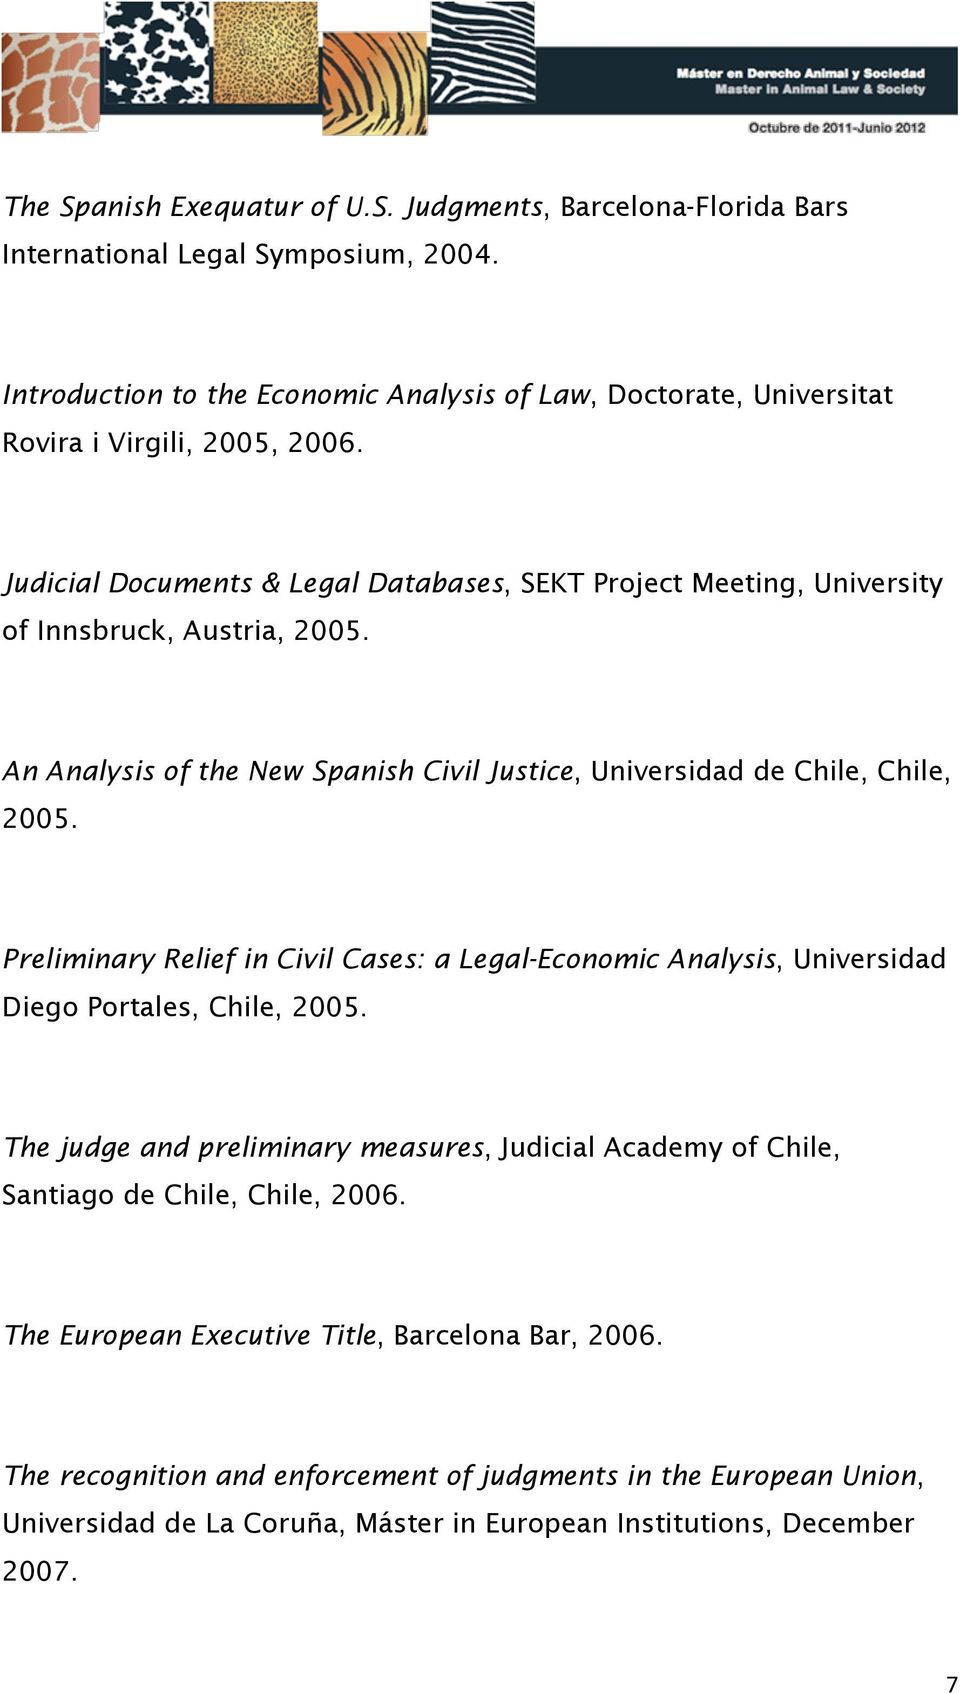 Judicial Documents & Legal Databases, SEKT Project Meeting, University of Innsbruck, Austria, 2005. An Analysis of the New Spanish Civil Justice, Universidad de Chile, Chile, 2005.